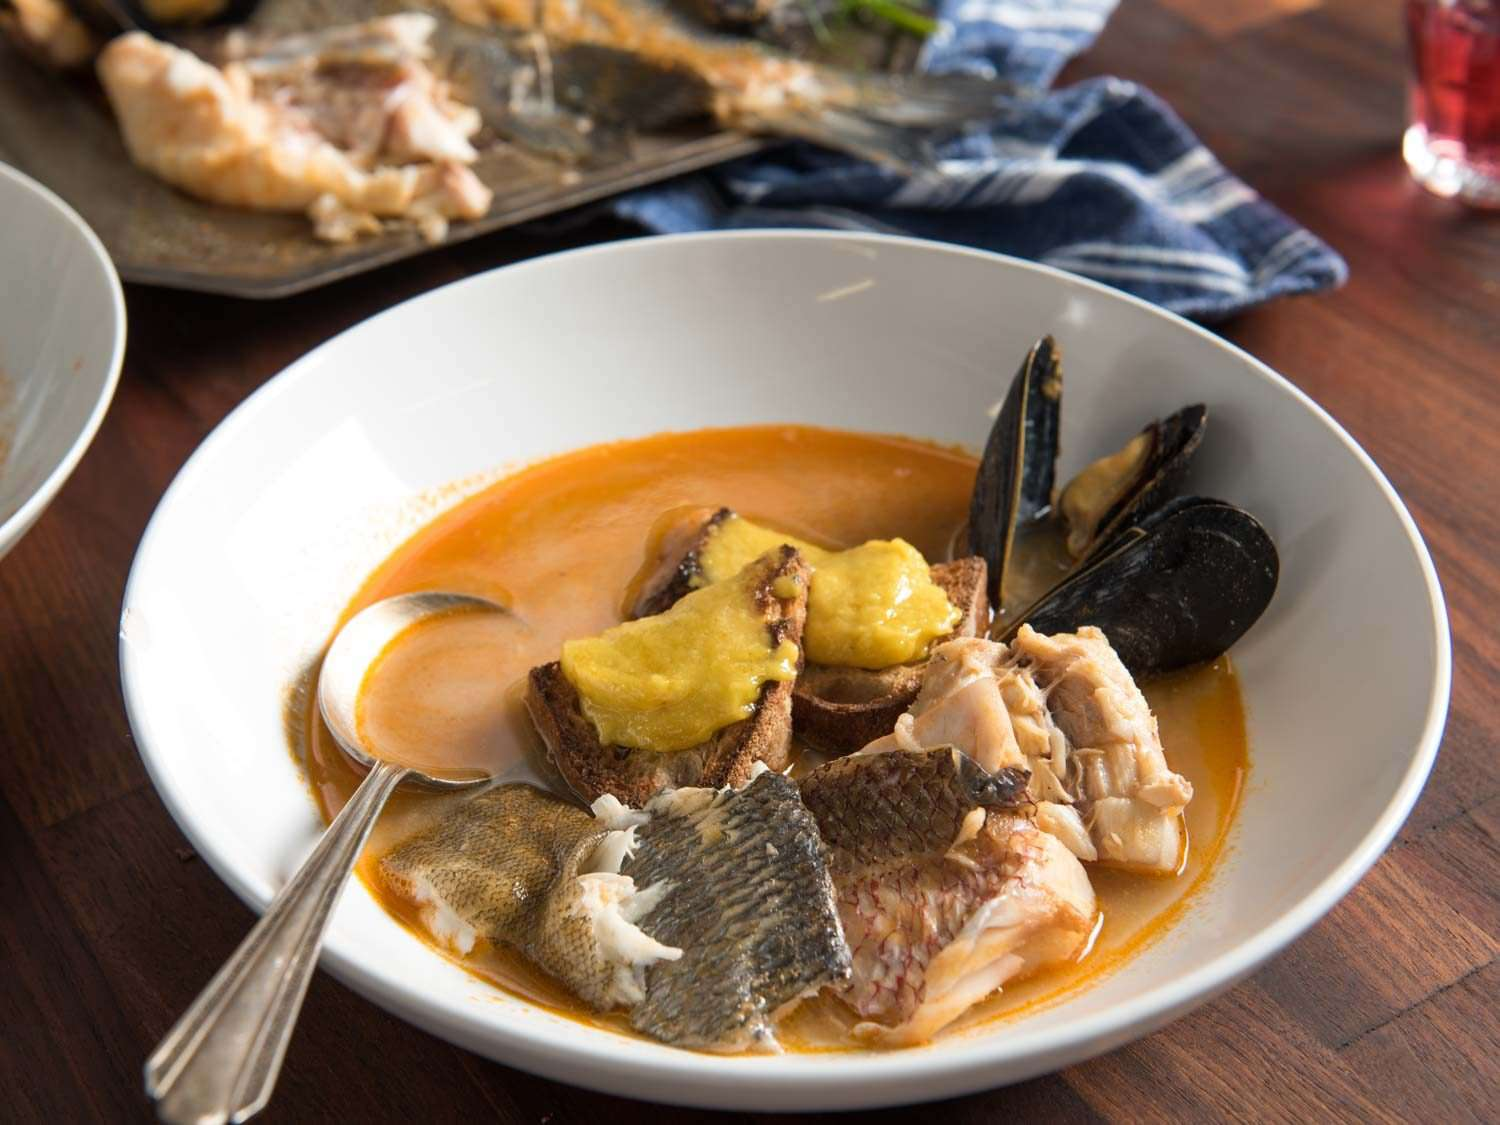 Close up of a serving of bouillabaisse at the table